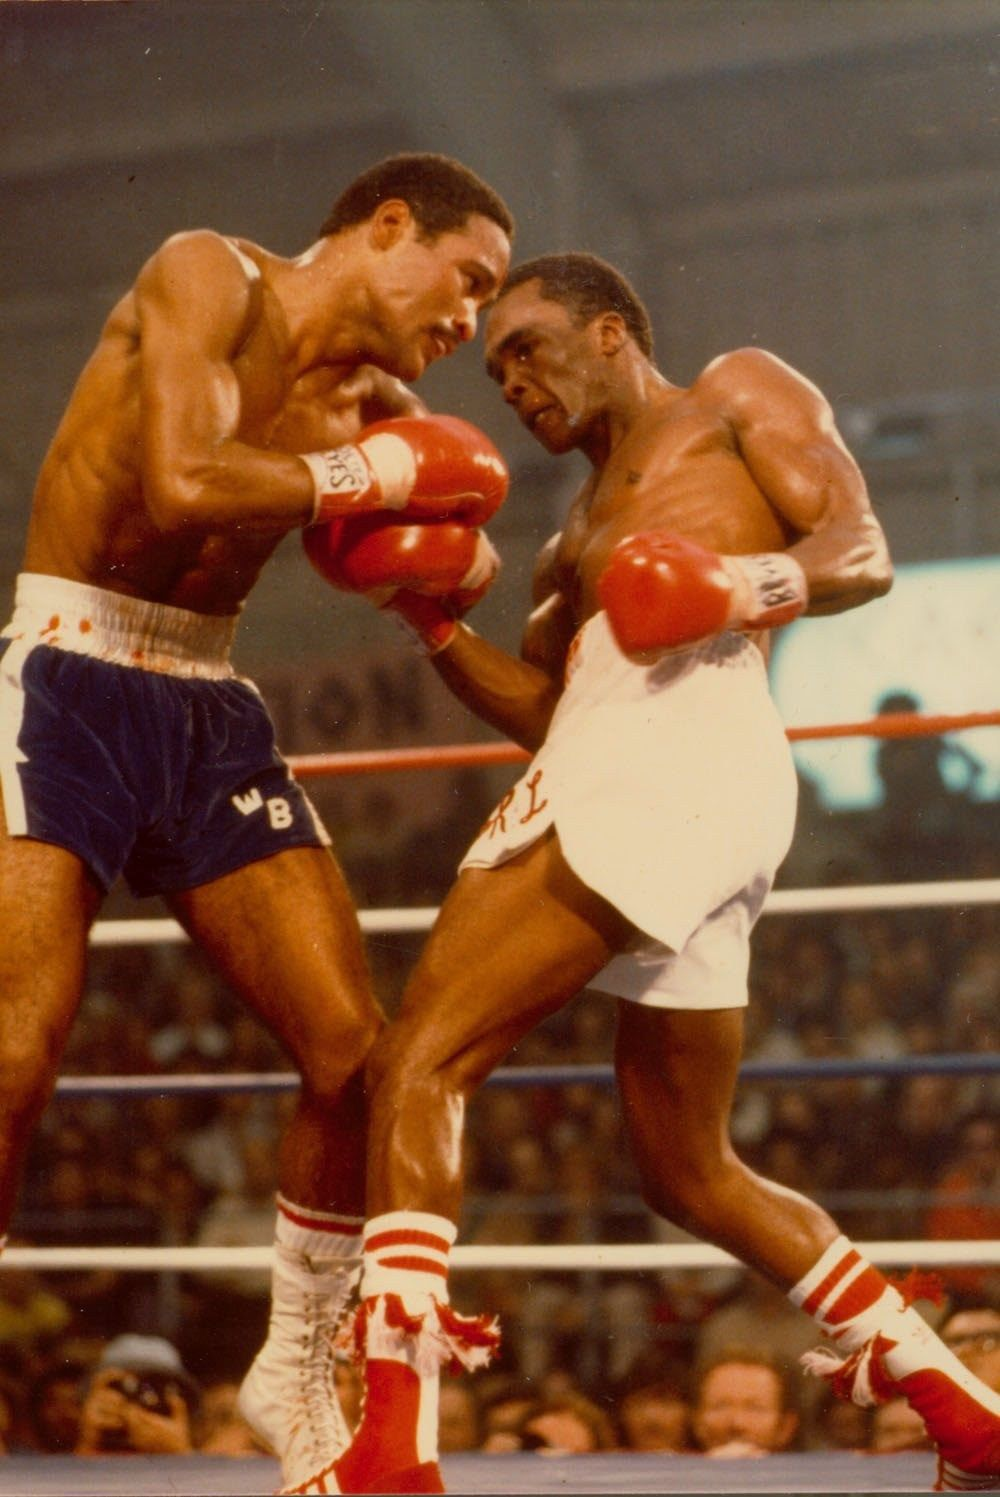 SUGAR RAY LEONARD vs WILFREDO BENITEZ 8X10 PHOTO BOXING PICTURE IN CLOSE ACTION